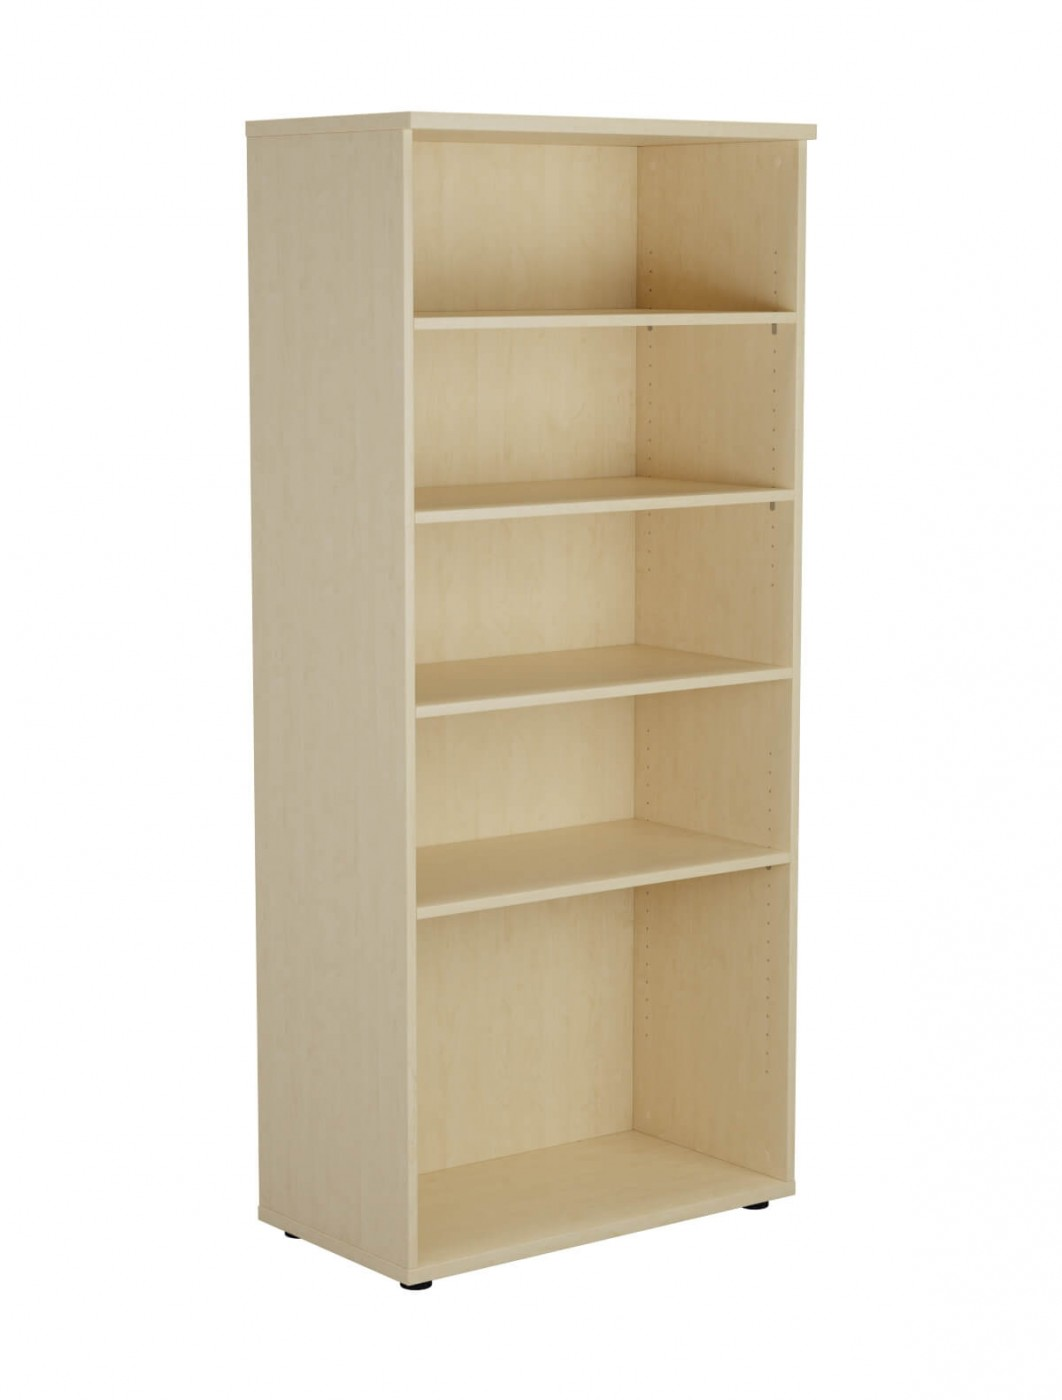 office furniture shelves. Office Furniture Bookcase 1.8m Tall TES1845 - Enlarged View Shelves K